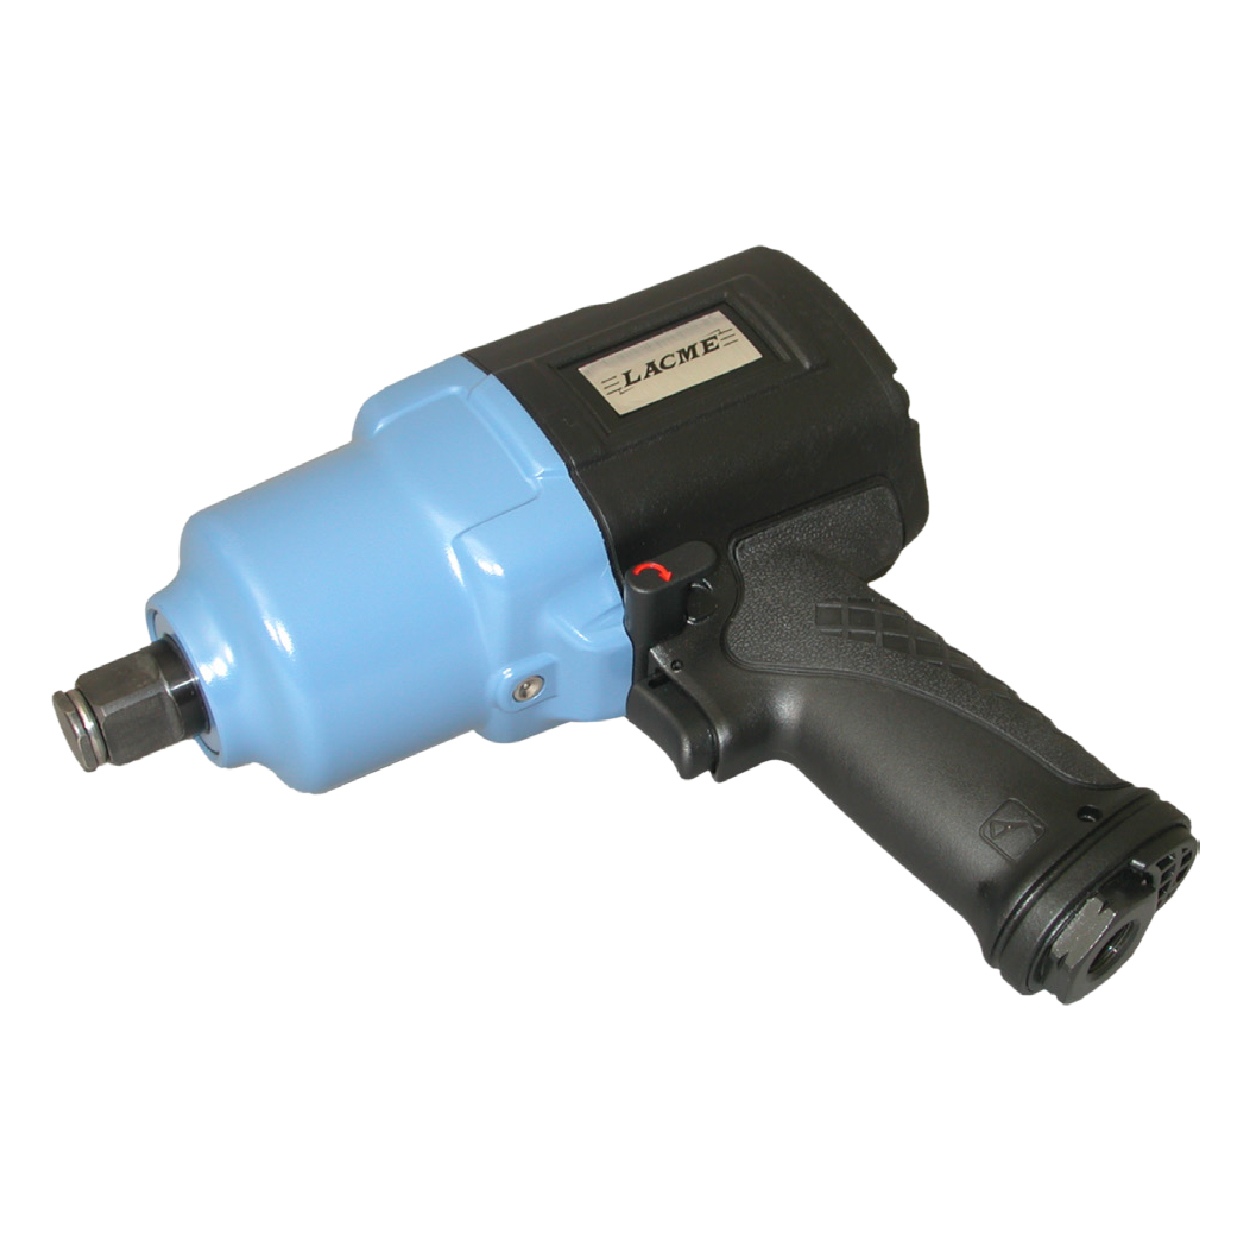 Imexco, IMPACT WRENCH 3/4